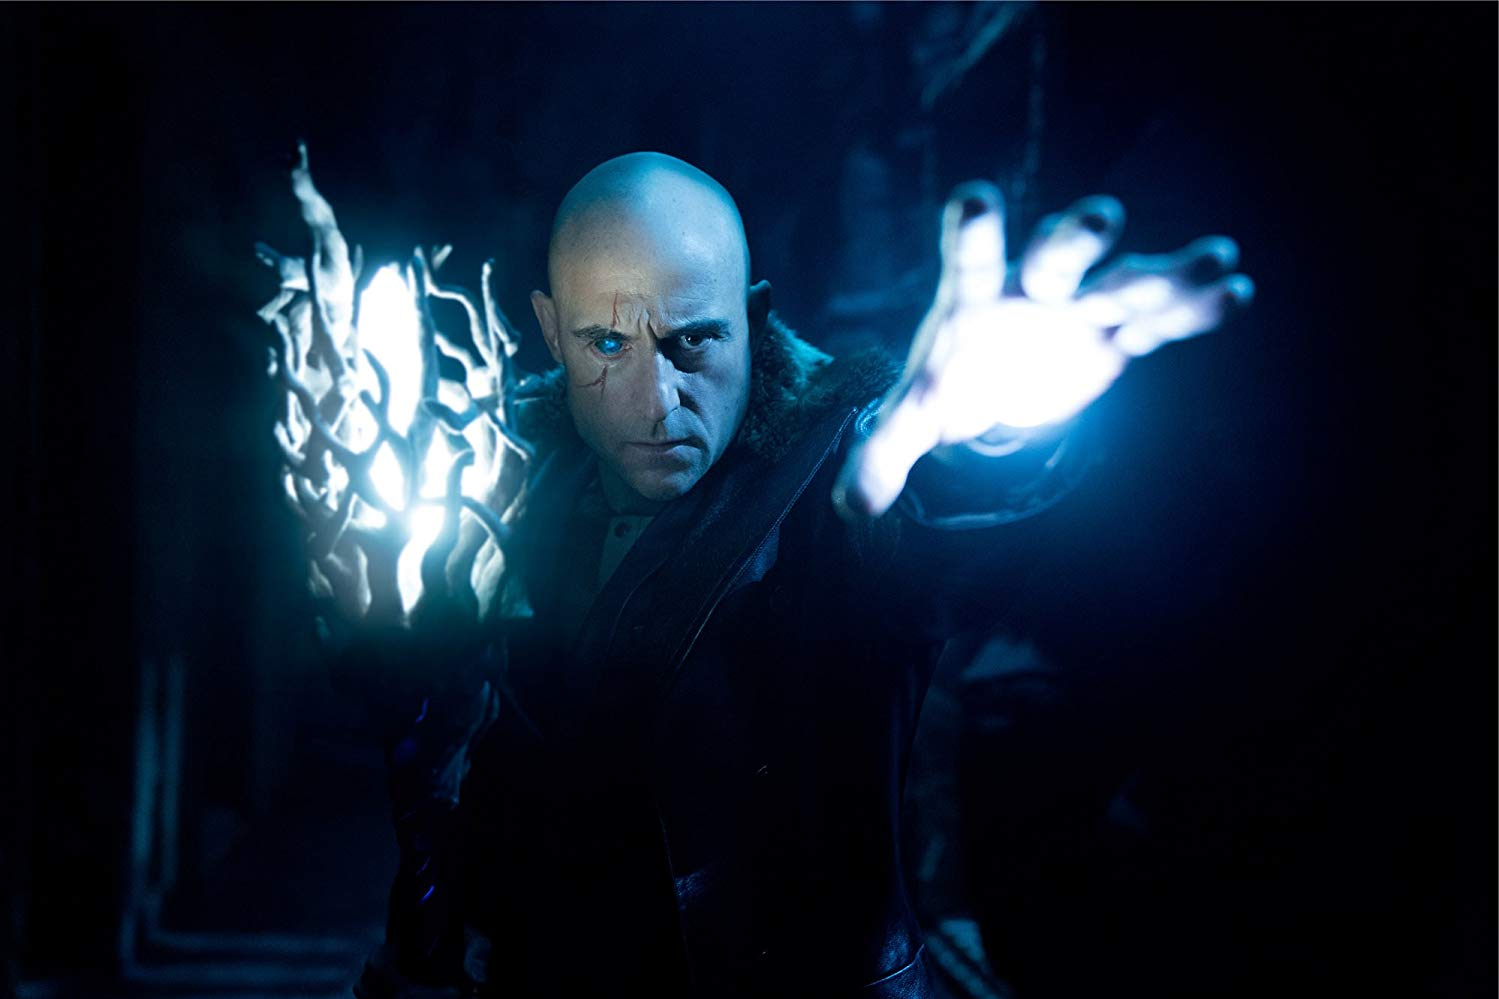 Mark Strong / Shazam! / DC Comics & Warner Bros. Pictures. © 2019. All rights reserved.